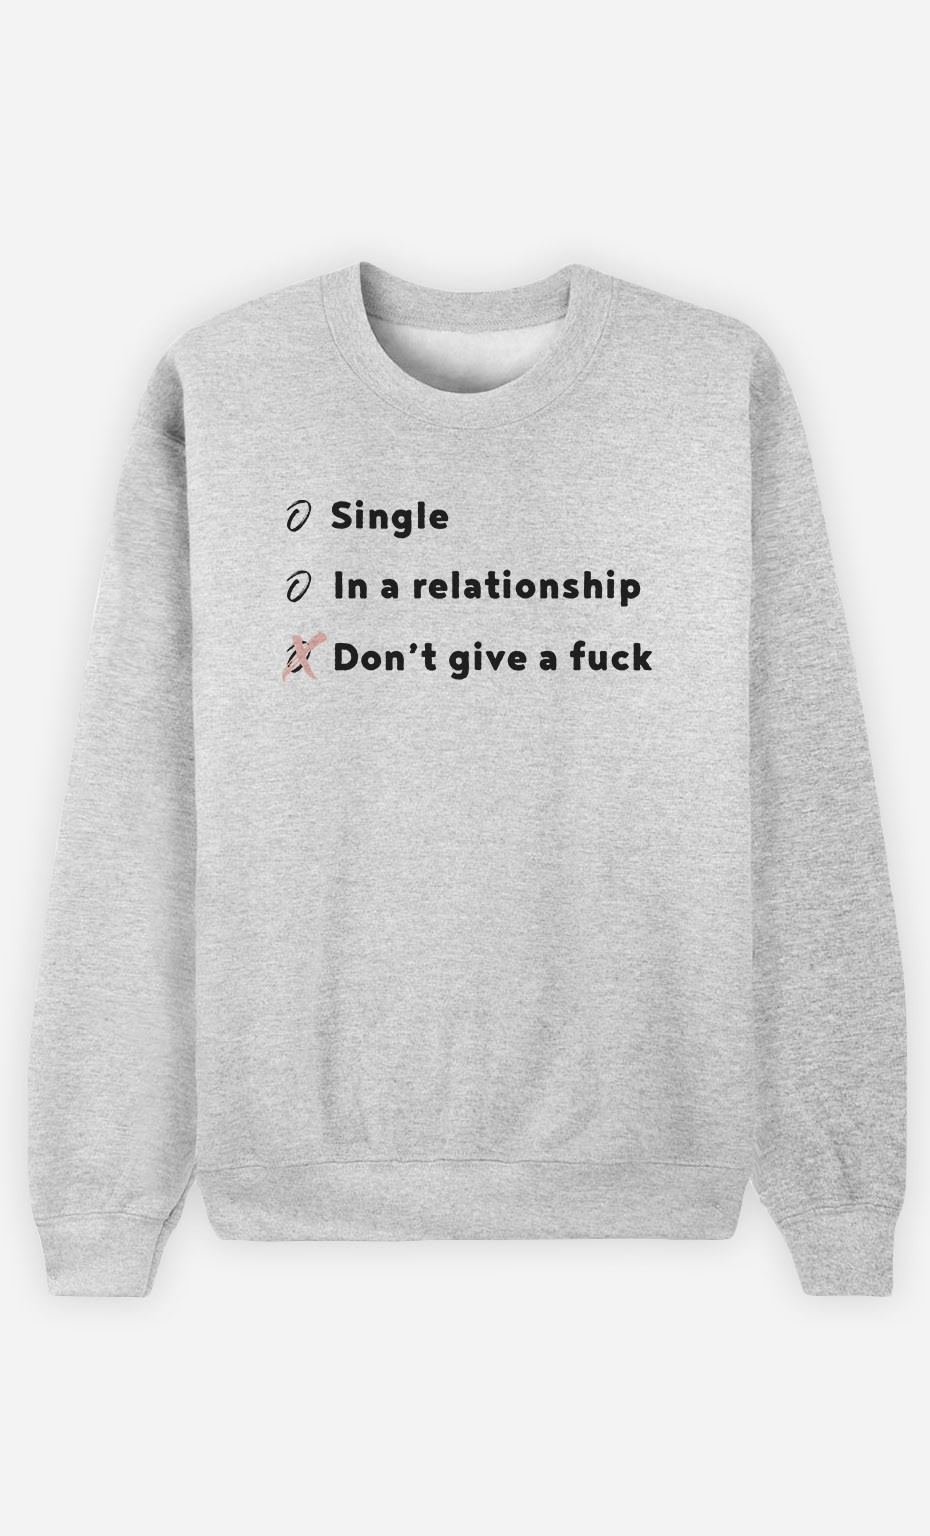 Sweatshirt Single, In A Relationship, Don't Give a Fuck